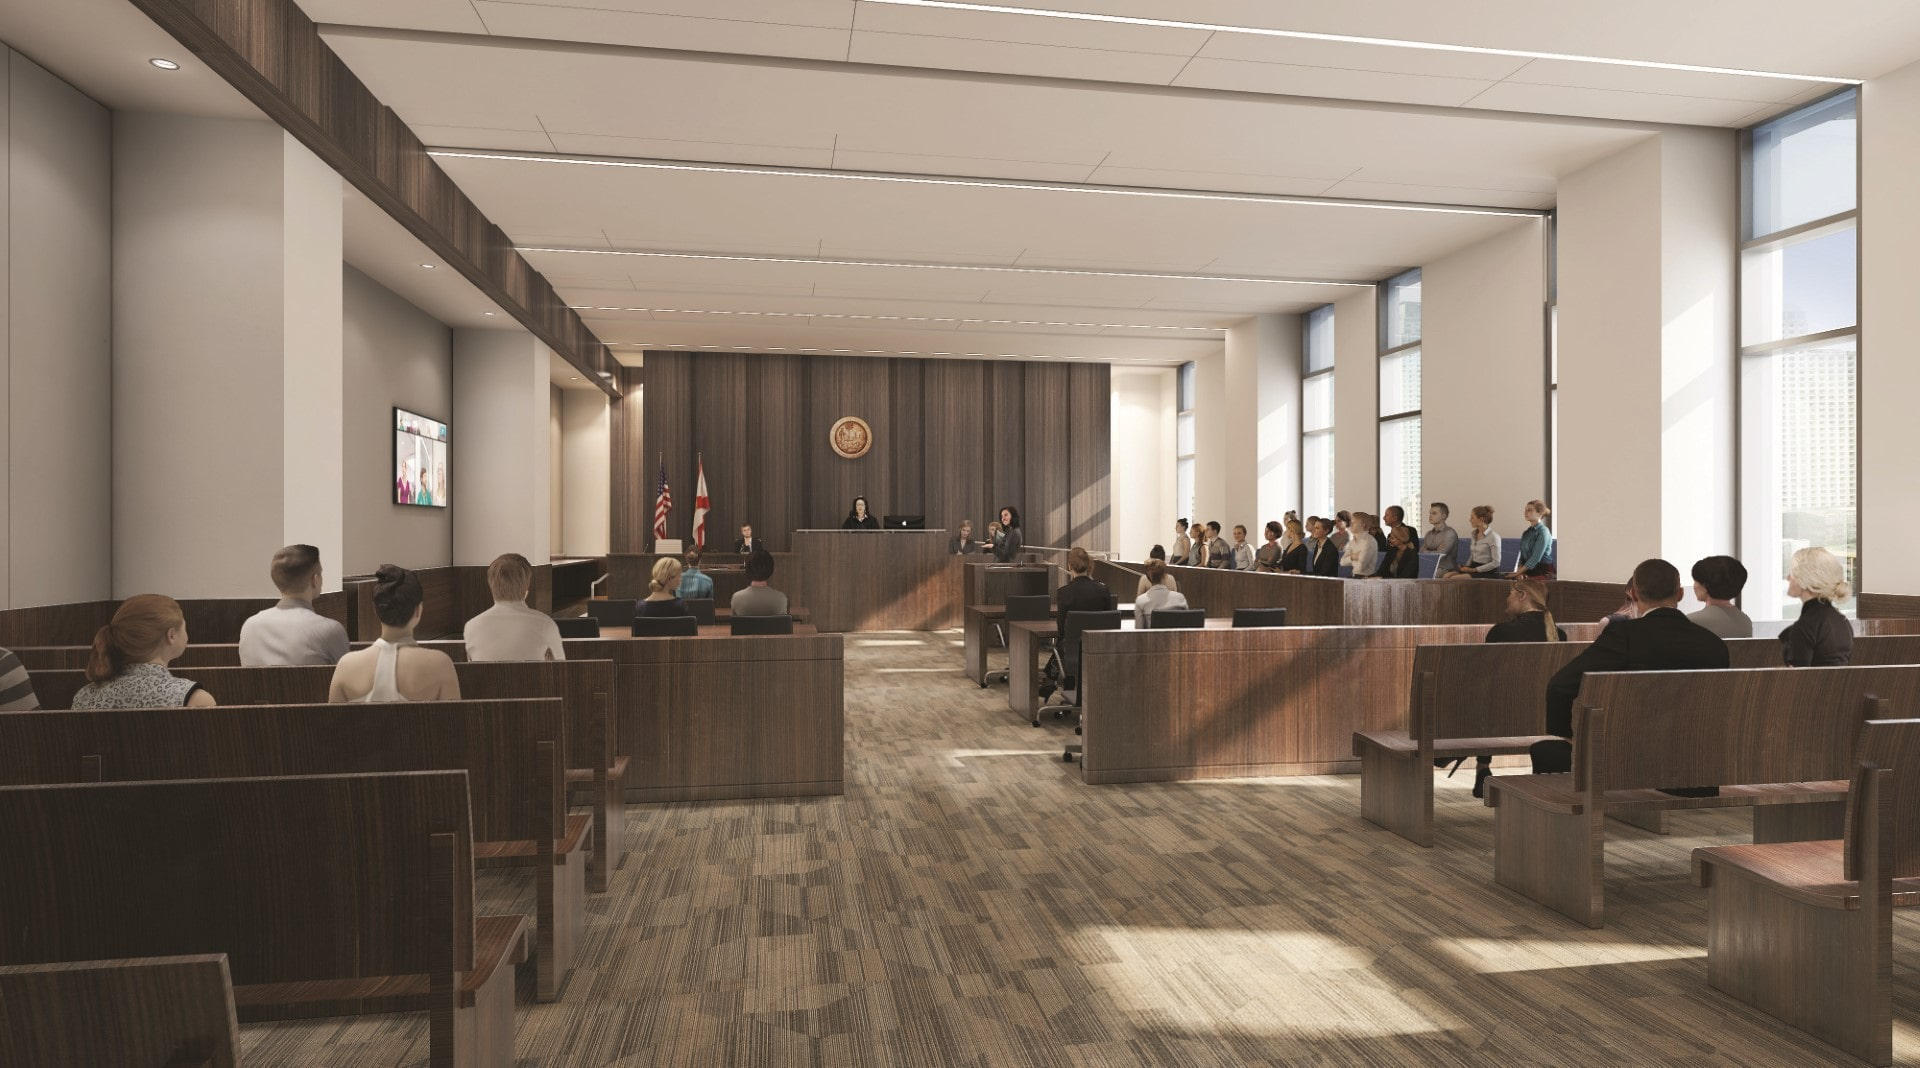 Miami-Dade County Civil and Probate Courthouse; designed by HOK.